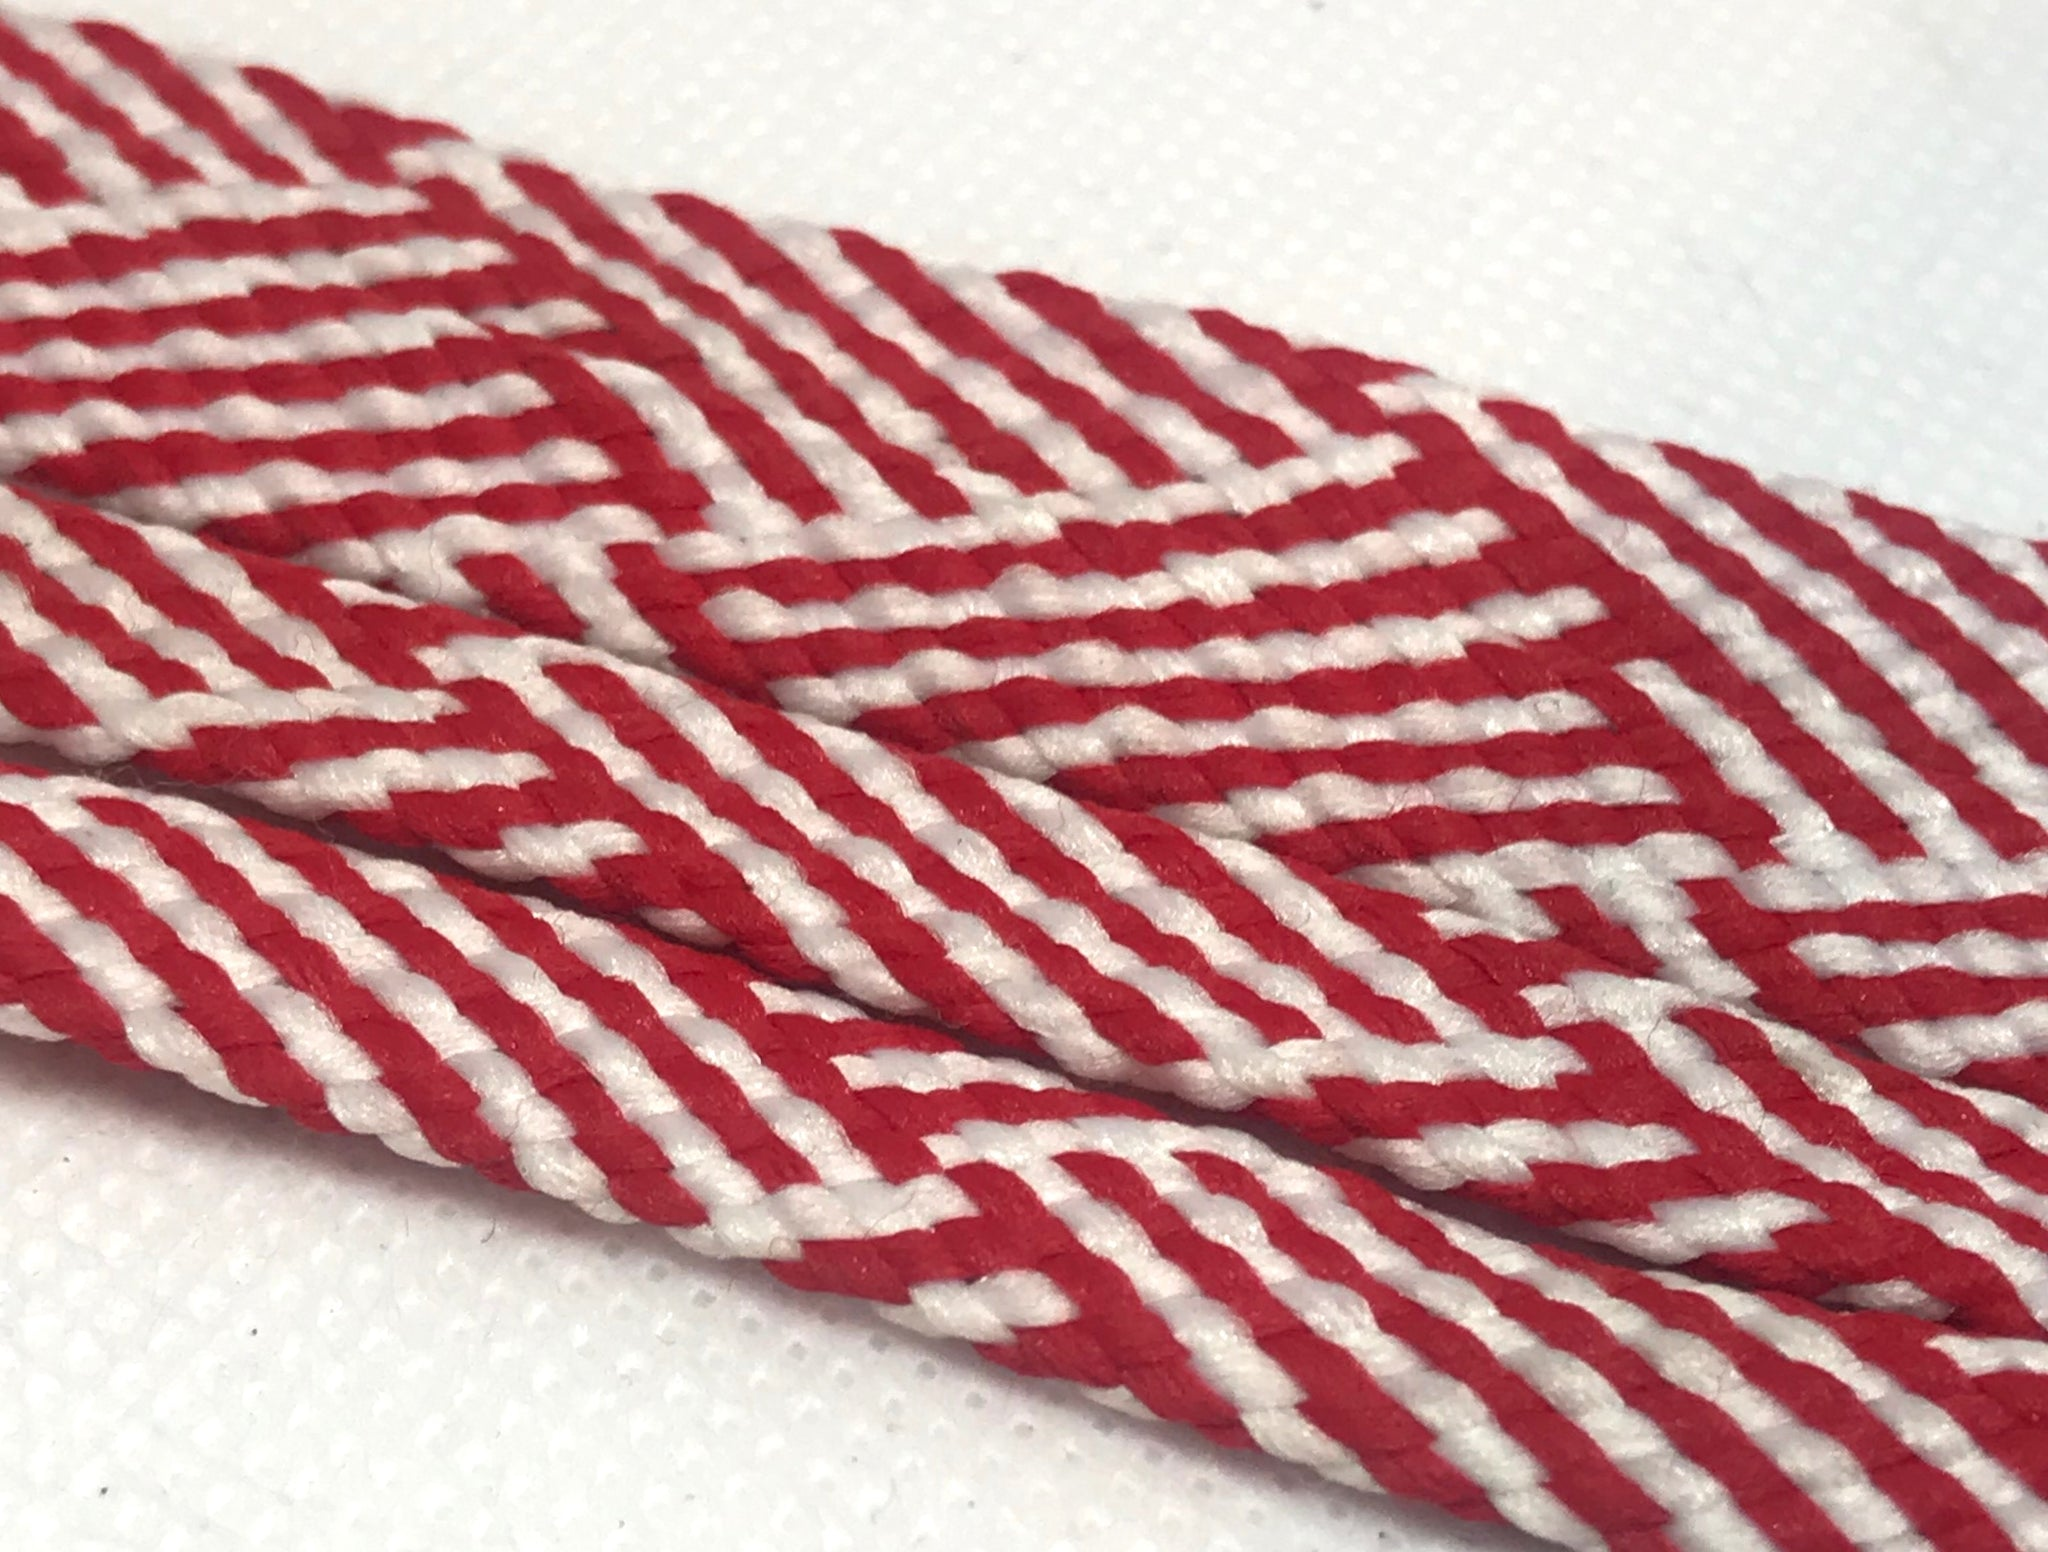 Herringbone Flat Shoelaces - Red & White